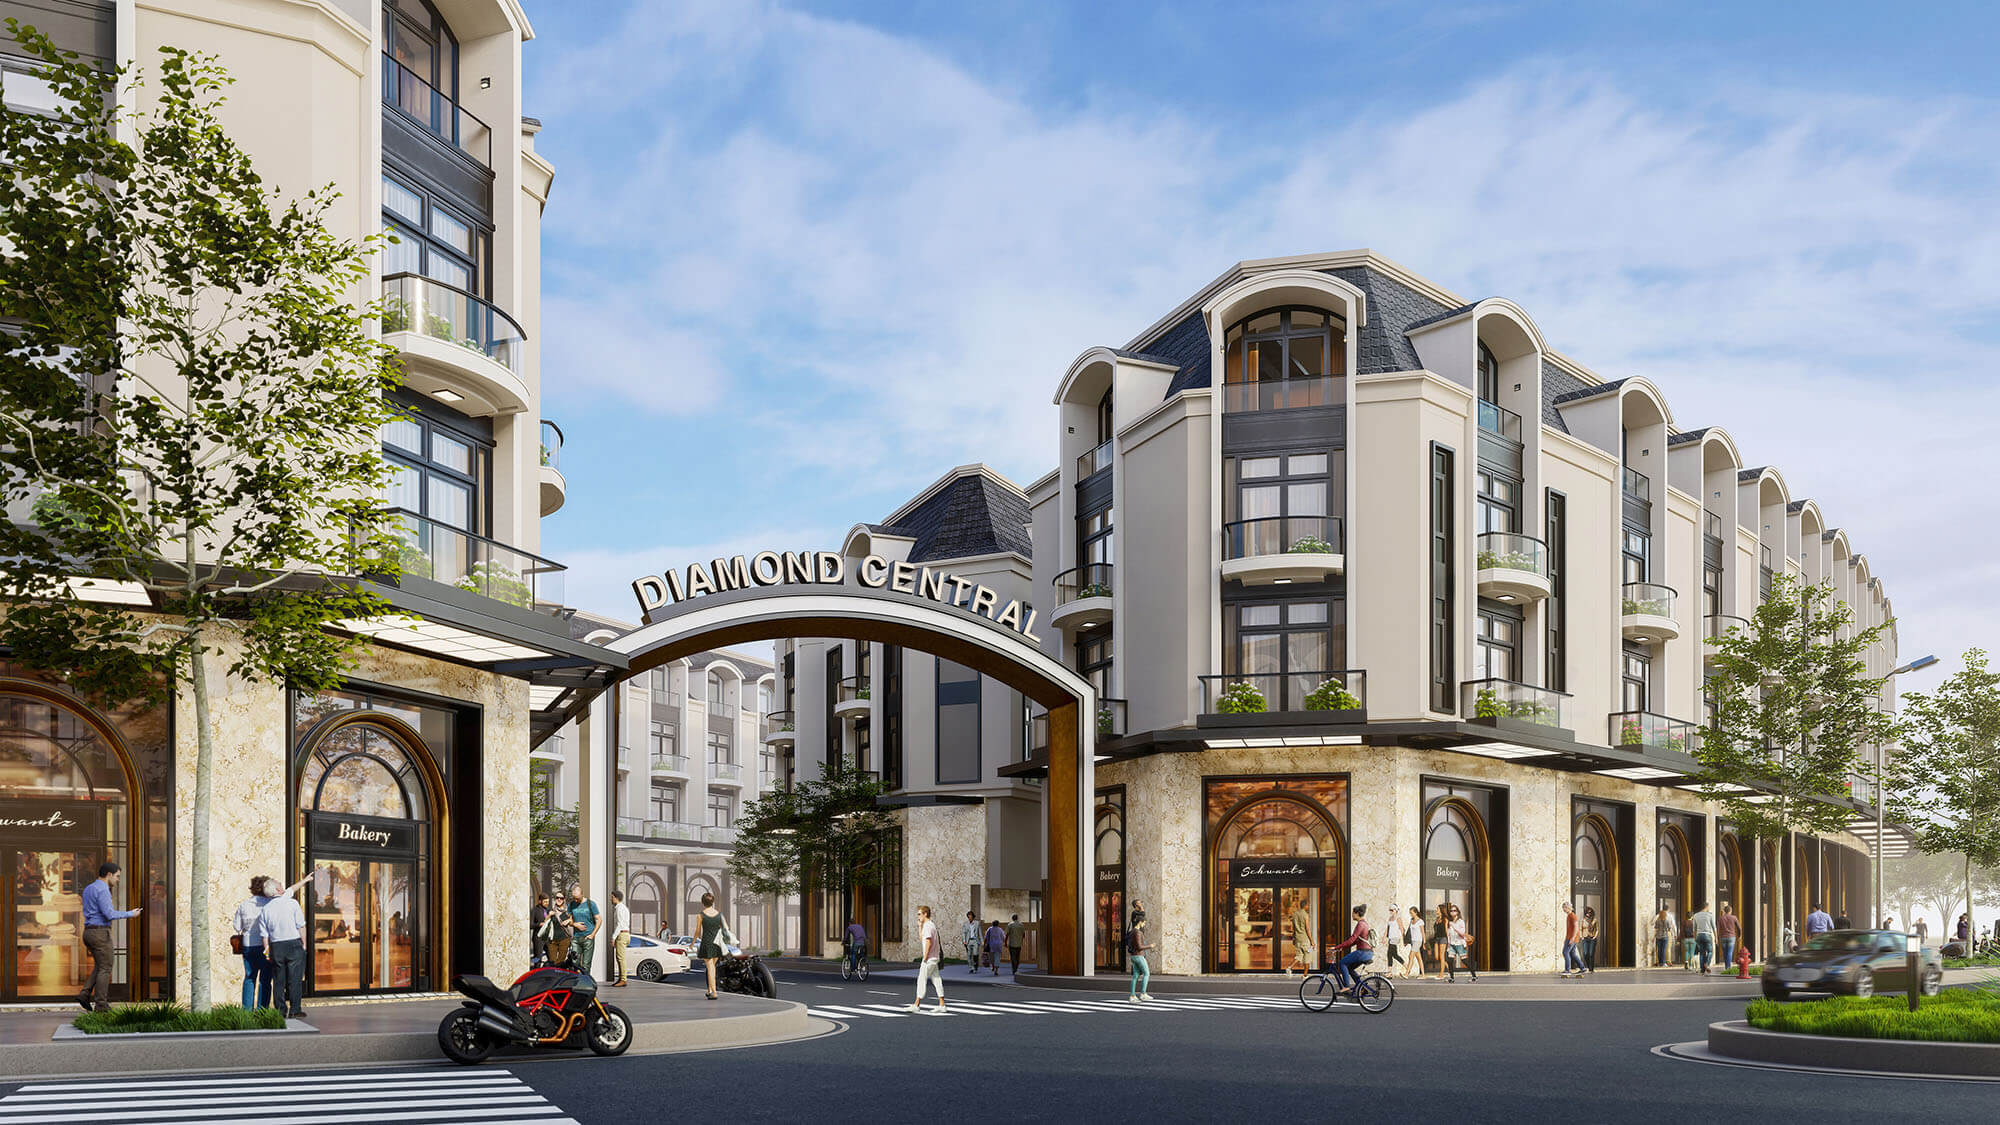 shophouse-du-an-diamond-central-by-shophouse.vn